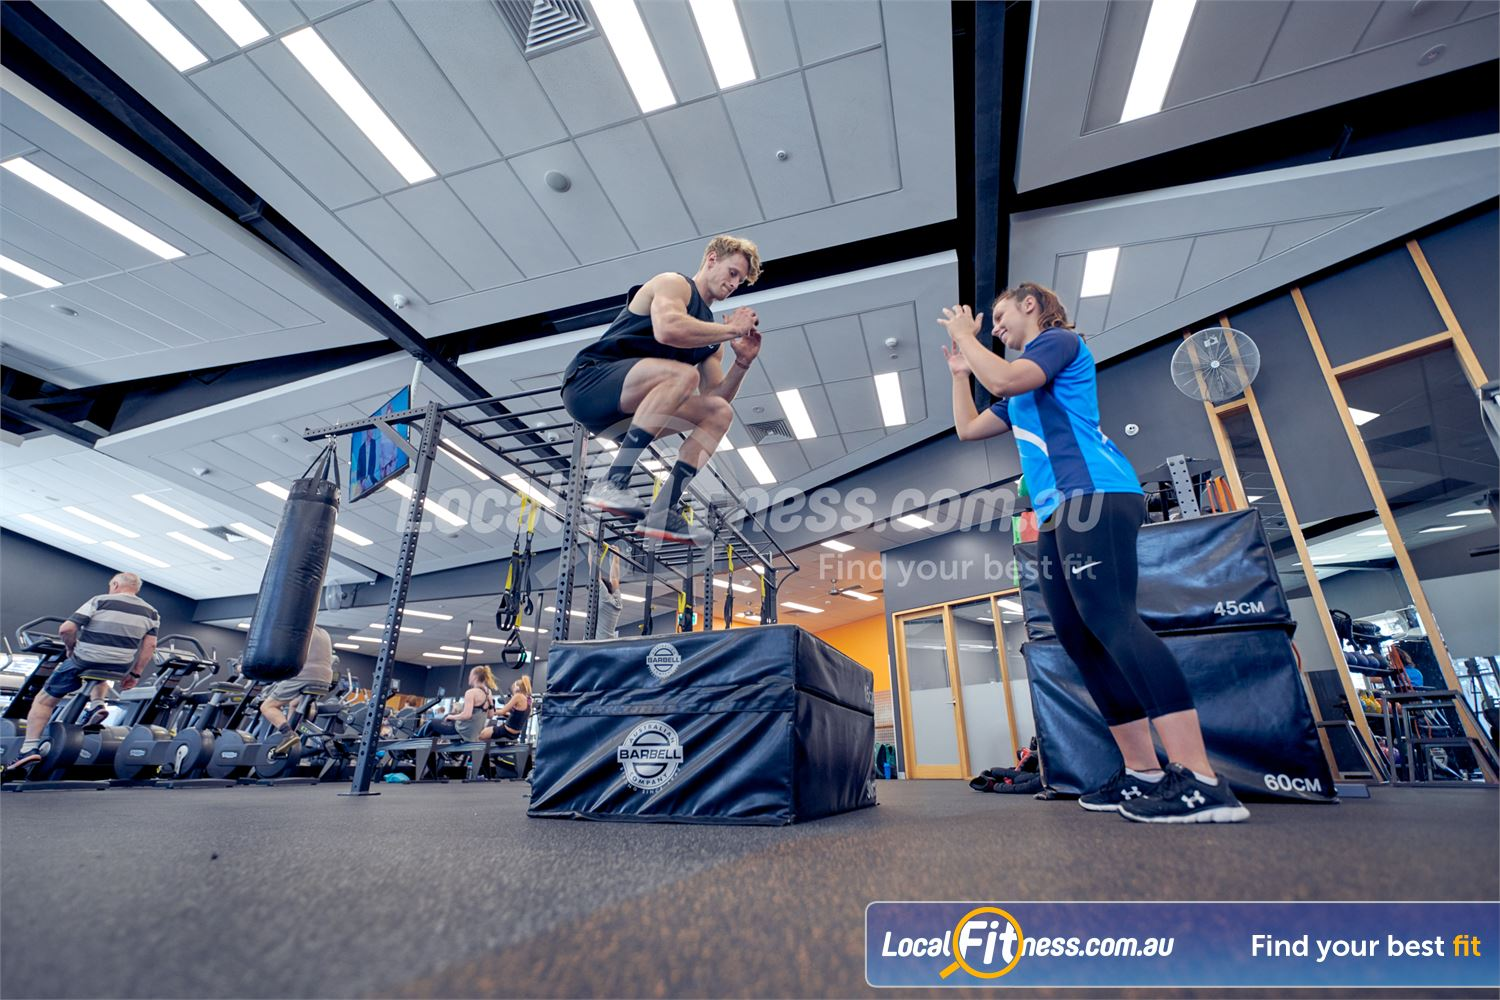 Eltham Leisure Centre Eltham Improve your athletic performance in our functional training zone.